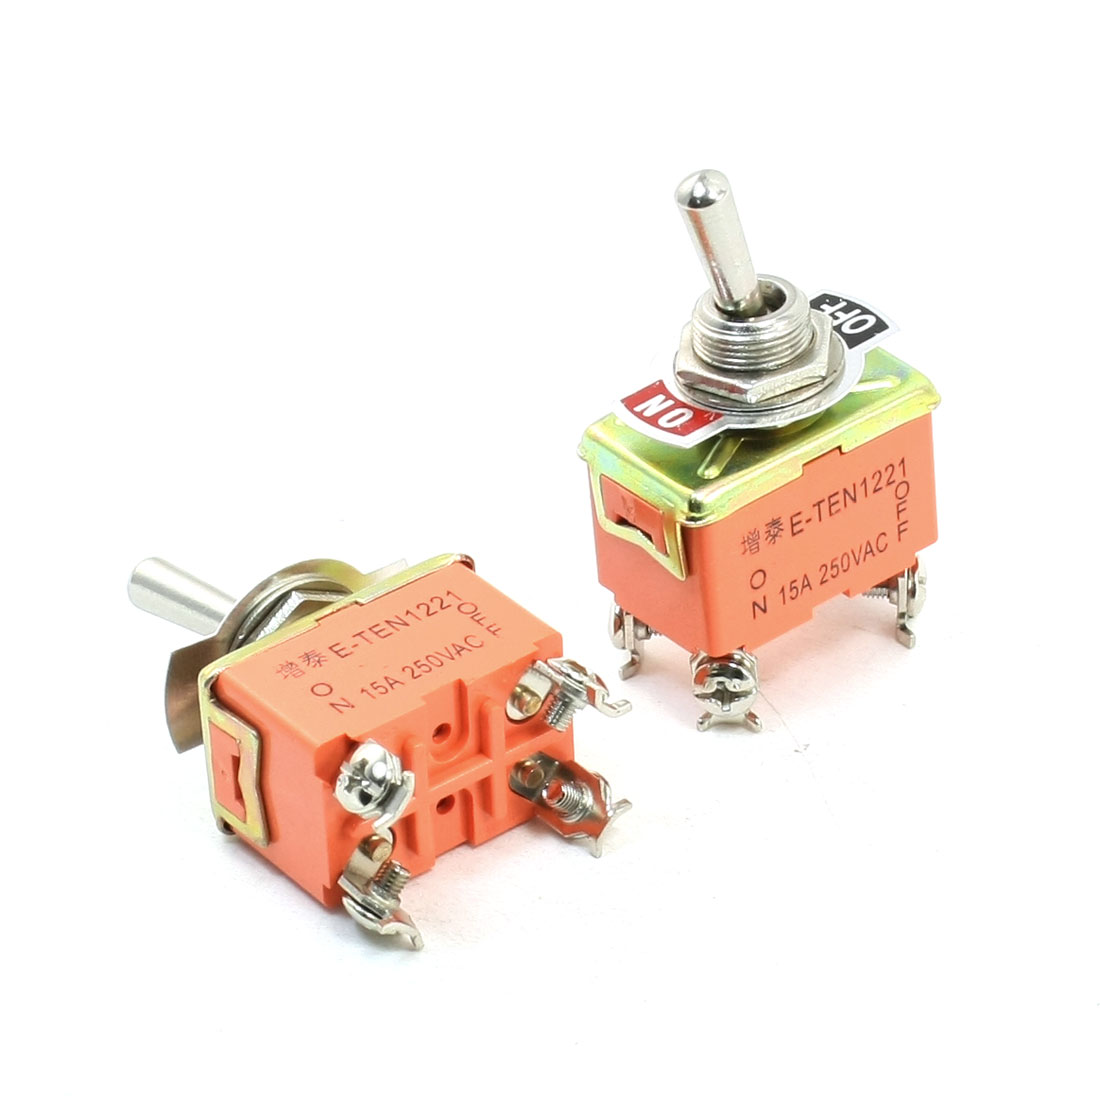 2PCS Panel Mount ON/OFF DPST 4 Pin Latching Toggle Switch AC 250V 15A